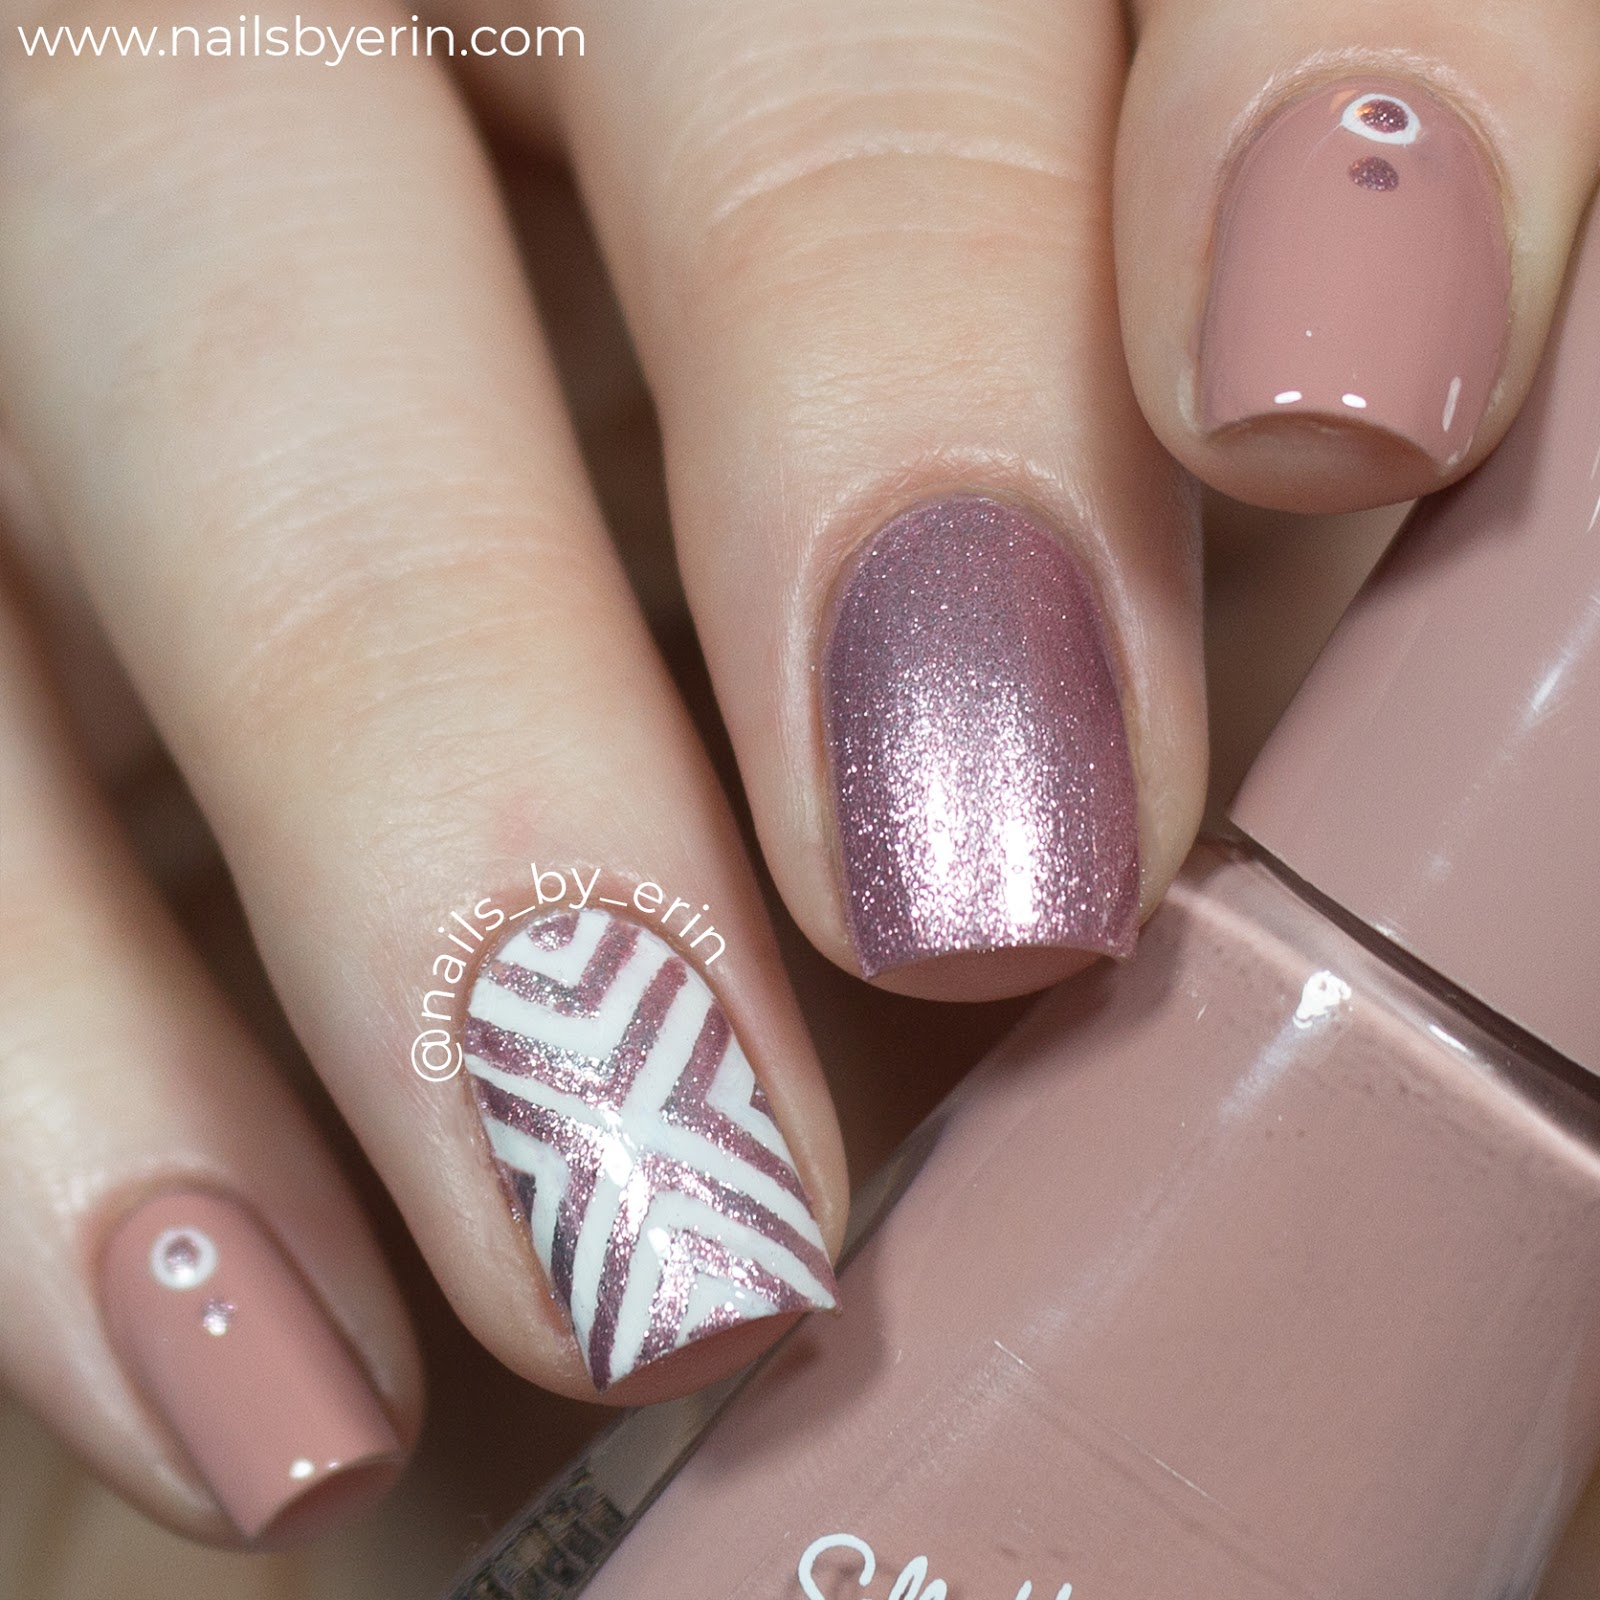 I Just Thought These Pink Toned Shades Went Together So Well Think This Is A Beautiful Color